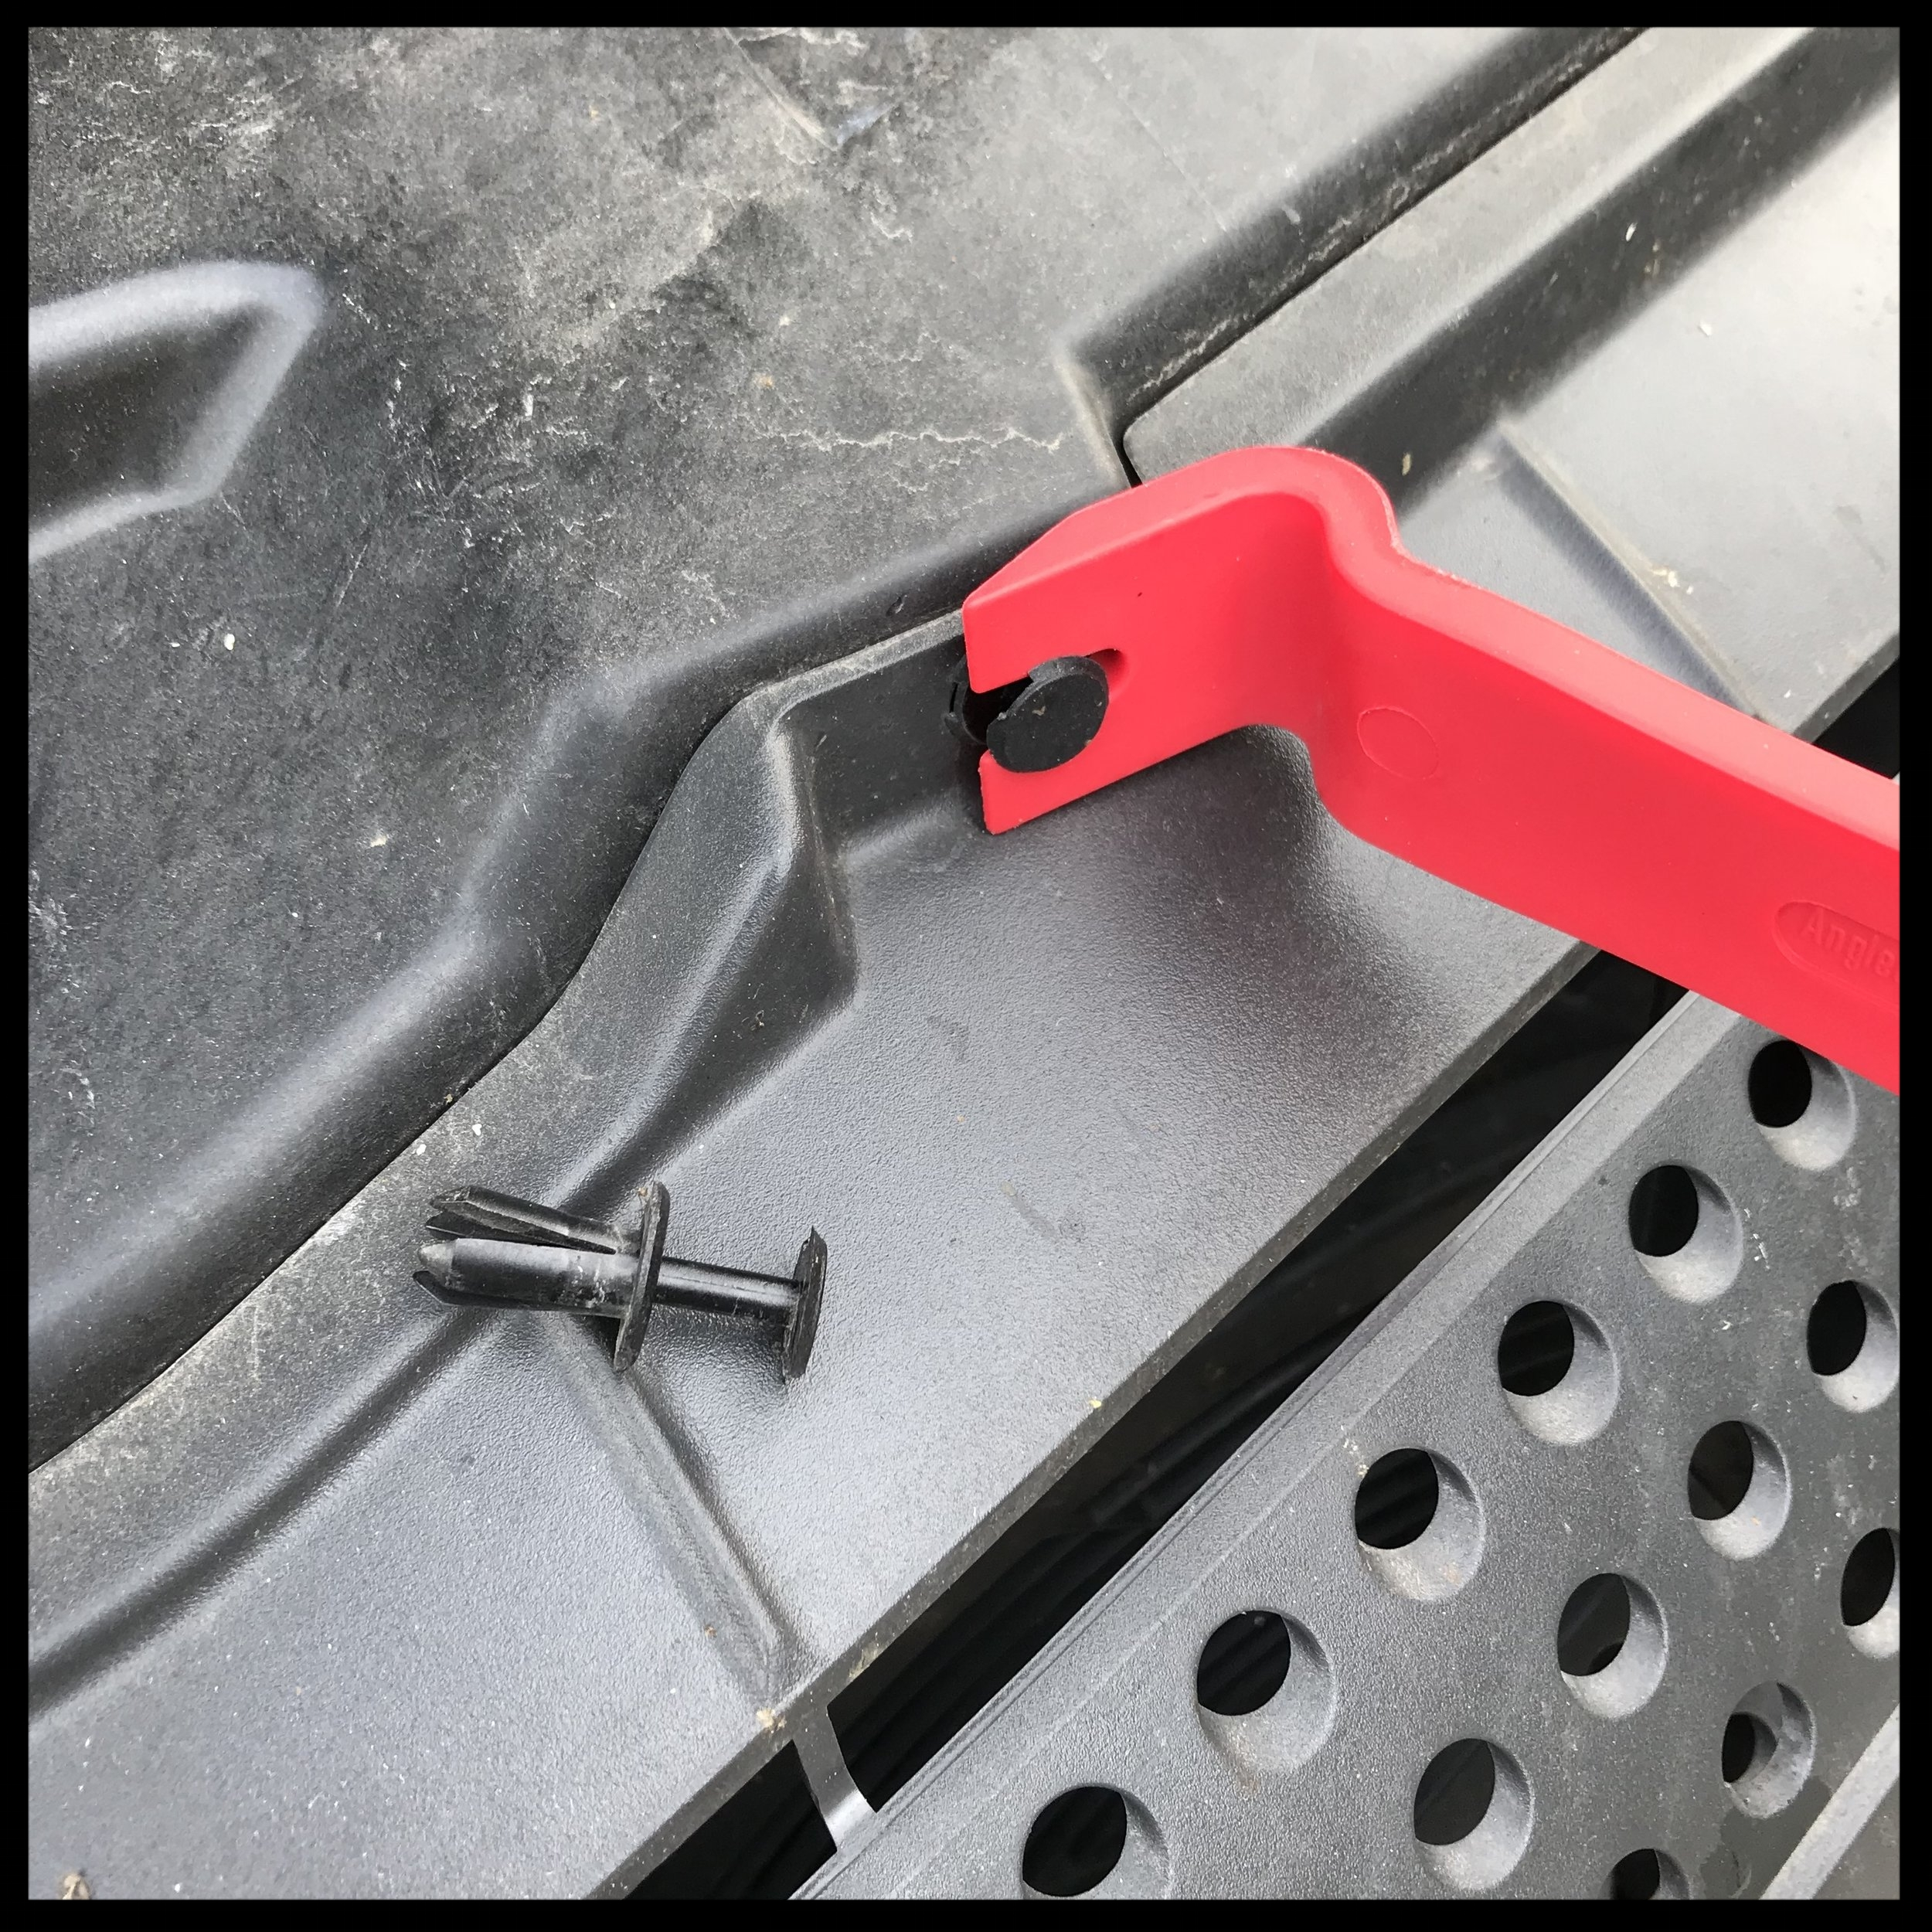 removing the grill and the plastic bumper cover is basically just pulling out a bunch of plastic clips.